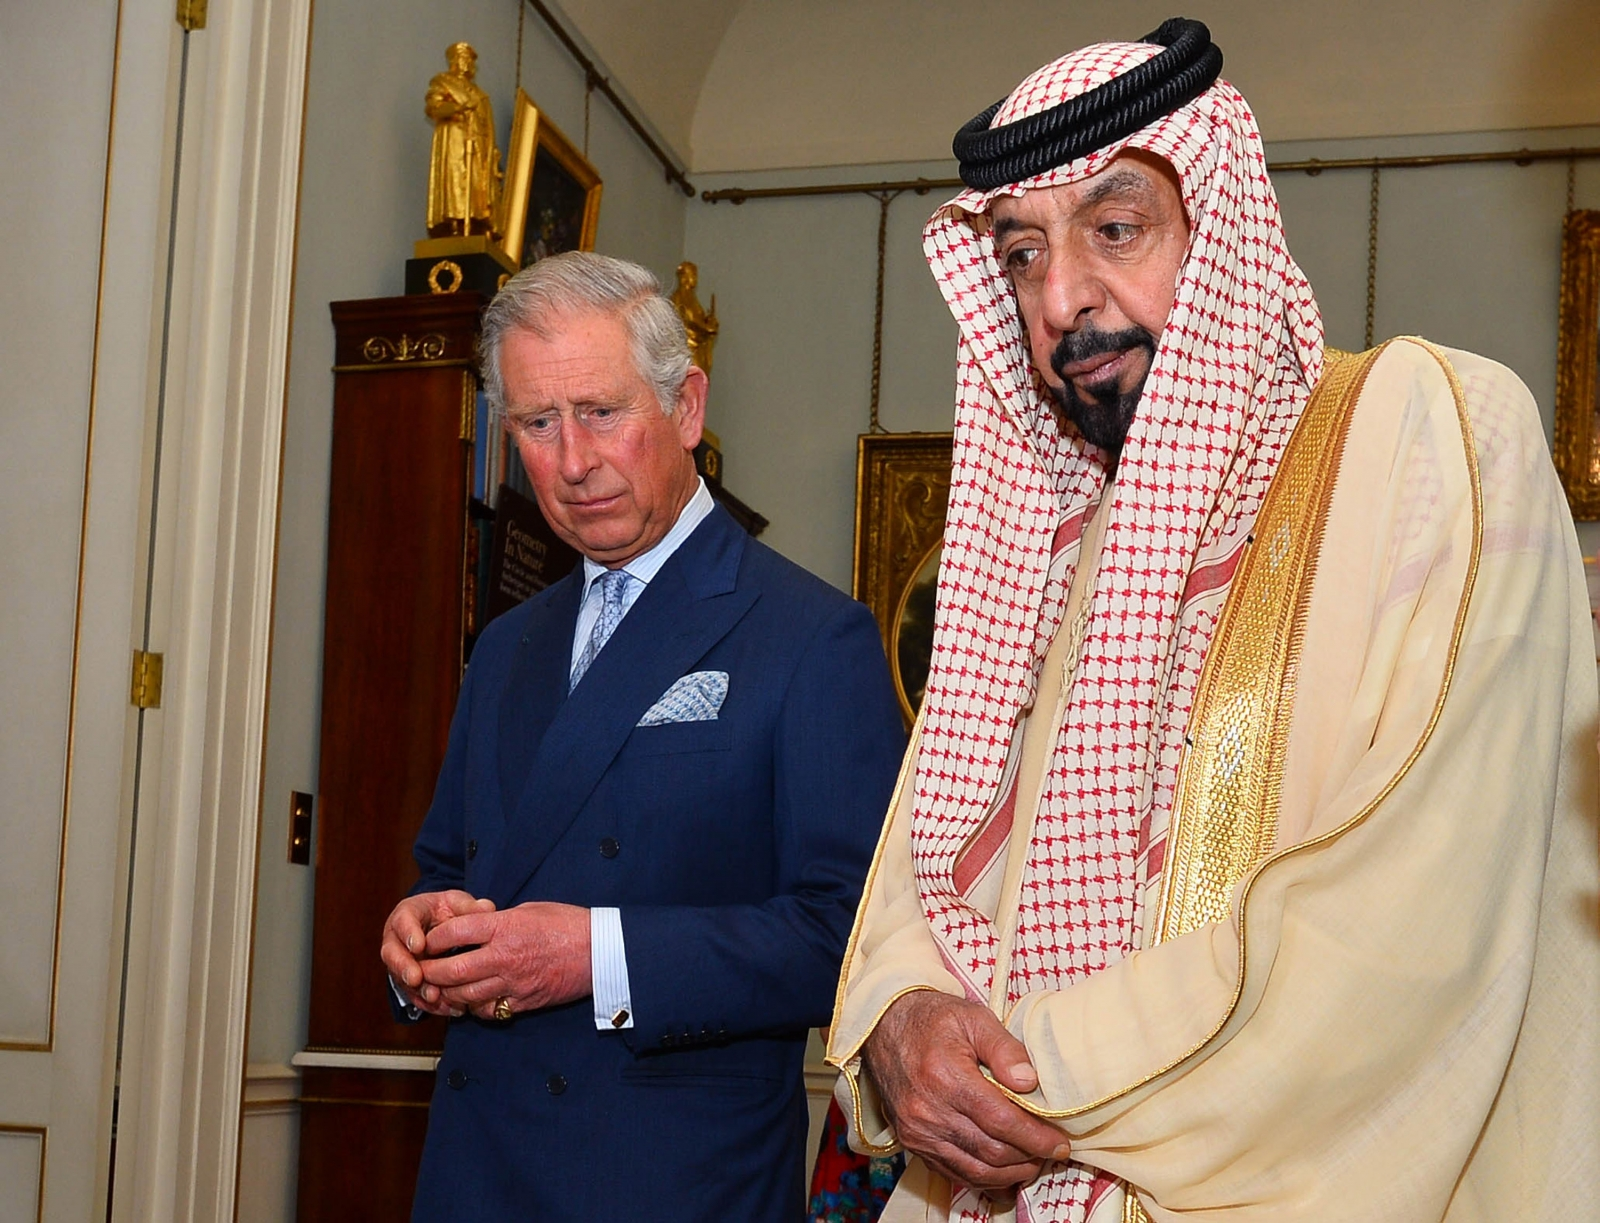 Prince Charles, Prince of Wales meets with President of the United Arab Emirates, Sheikh Khalifa bin Zayed Al Nahyan during his visit to Clarence House on May 1, 2013